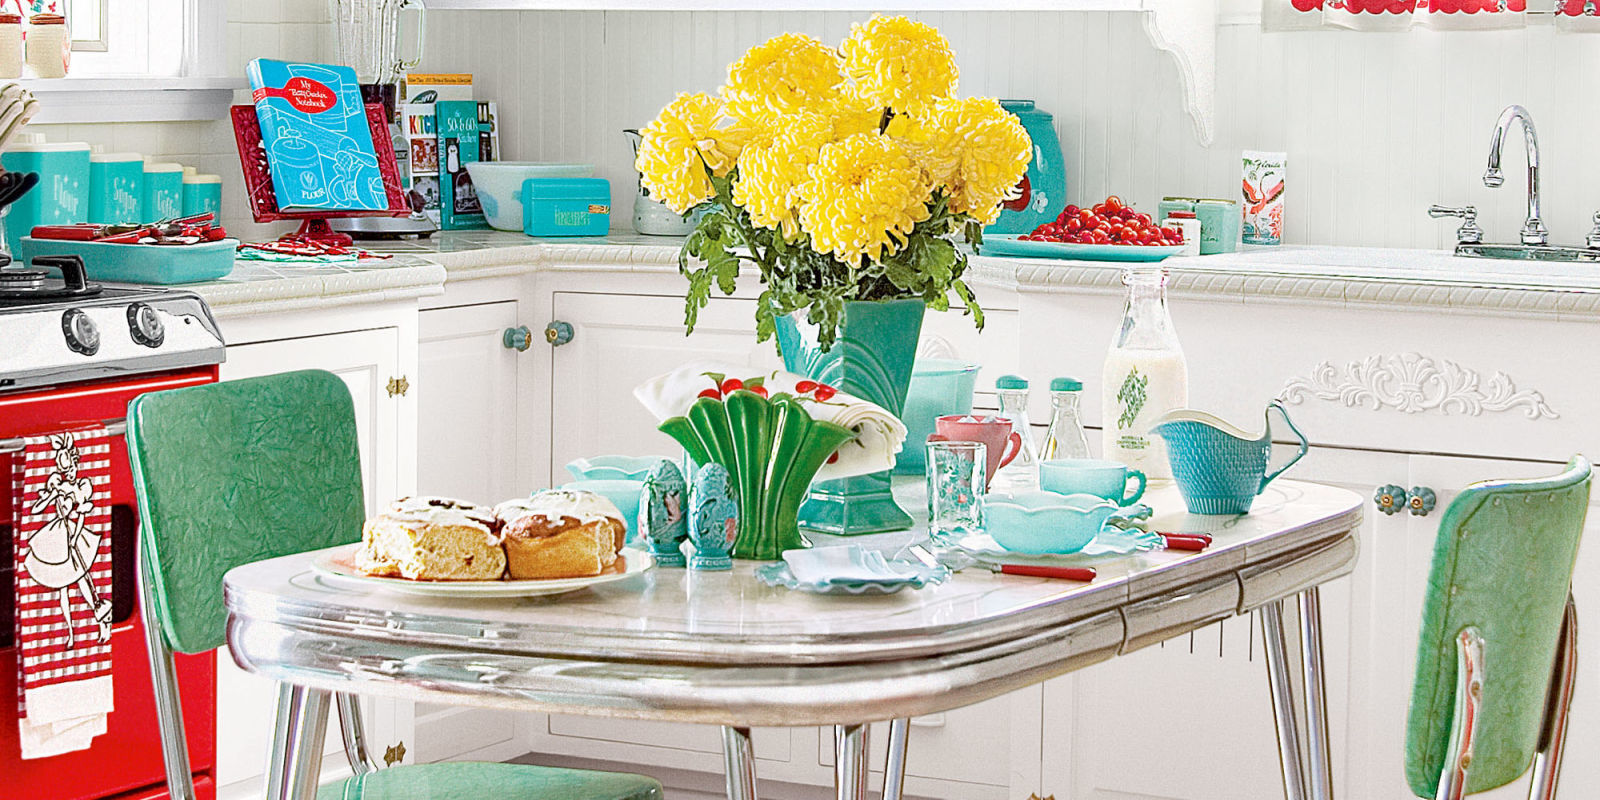 11 Retro Diner Decor Ideas for Your Kitchen - Vintage ...